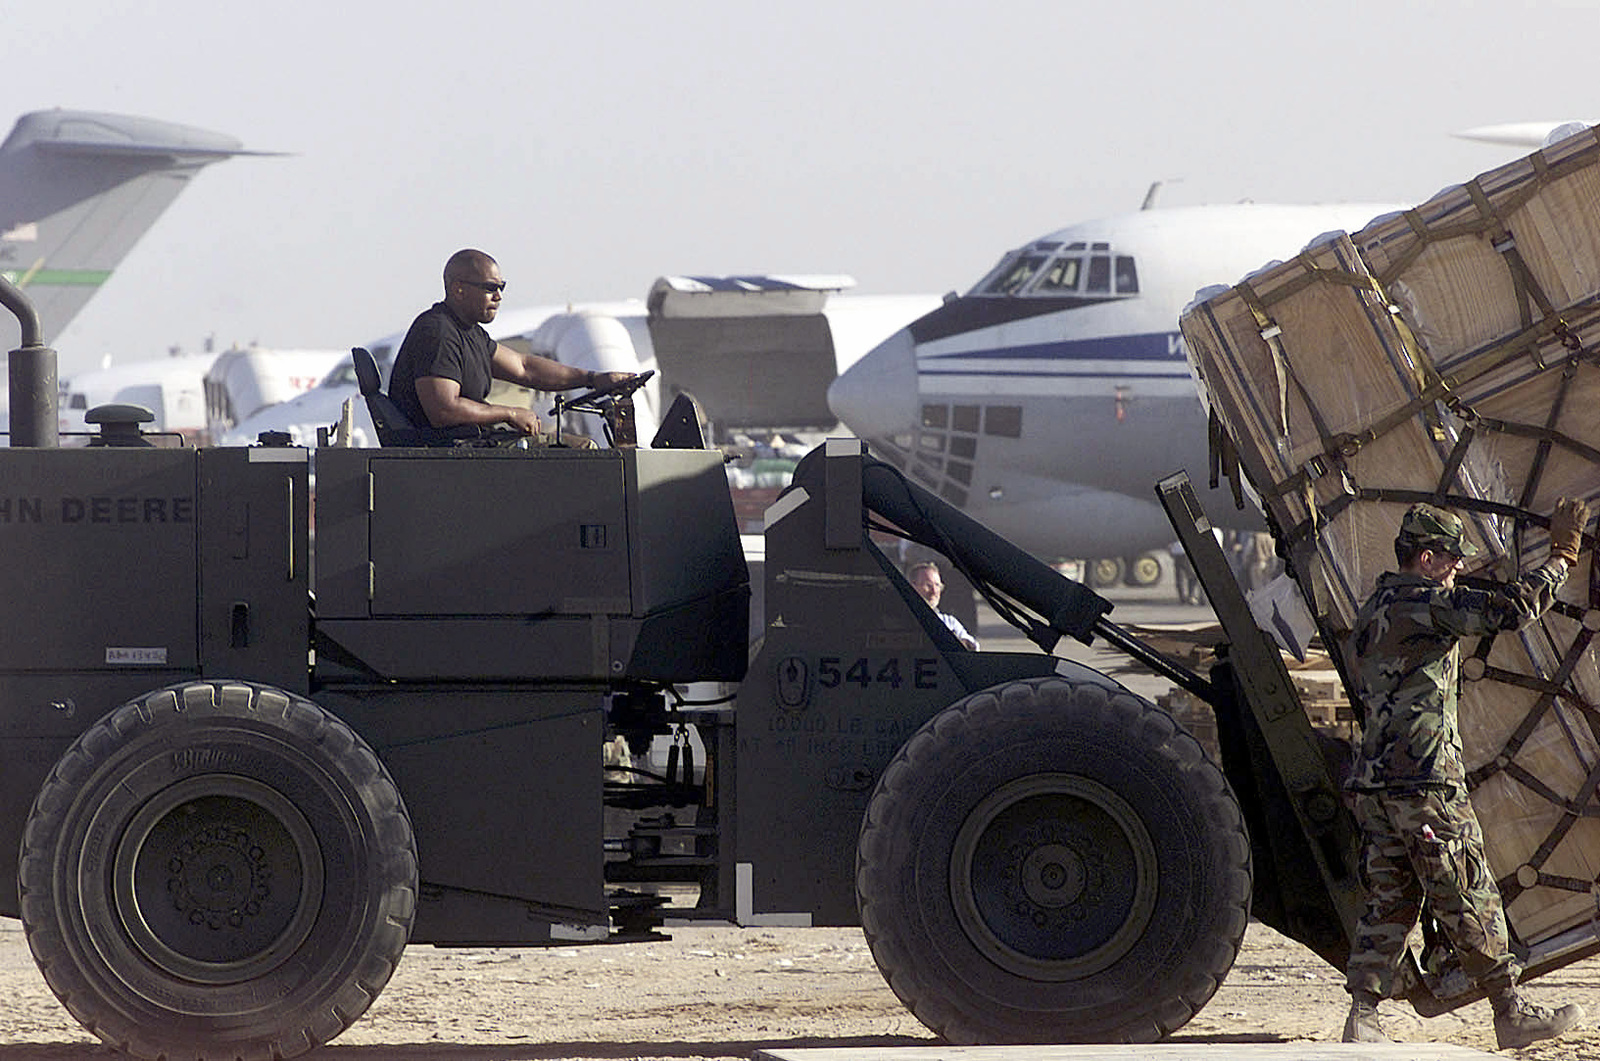 United States Air Force personnel assigned to the 633rd Air Mobility Support Squadron, use a John Deere 544E Forklift to move a pallet of humanitarian earthquake relief supplies bound for the earthquake stricken area in India